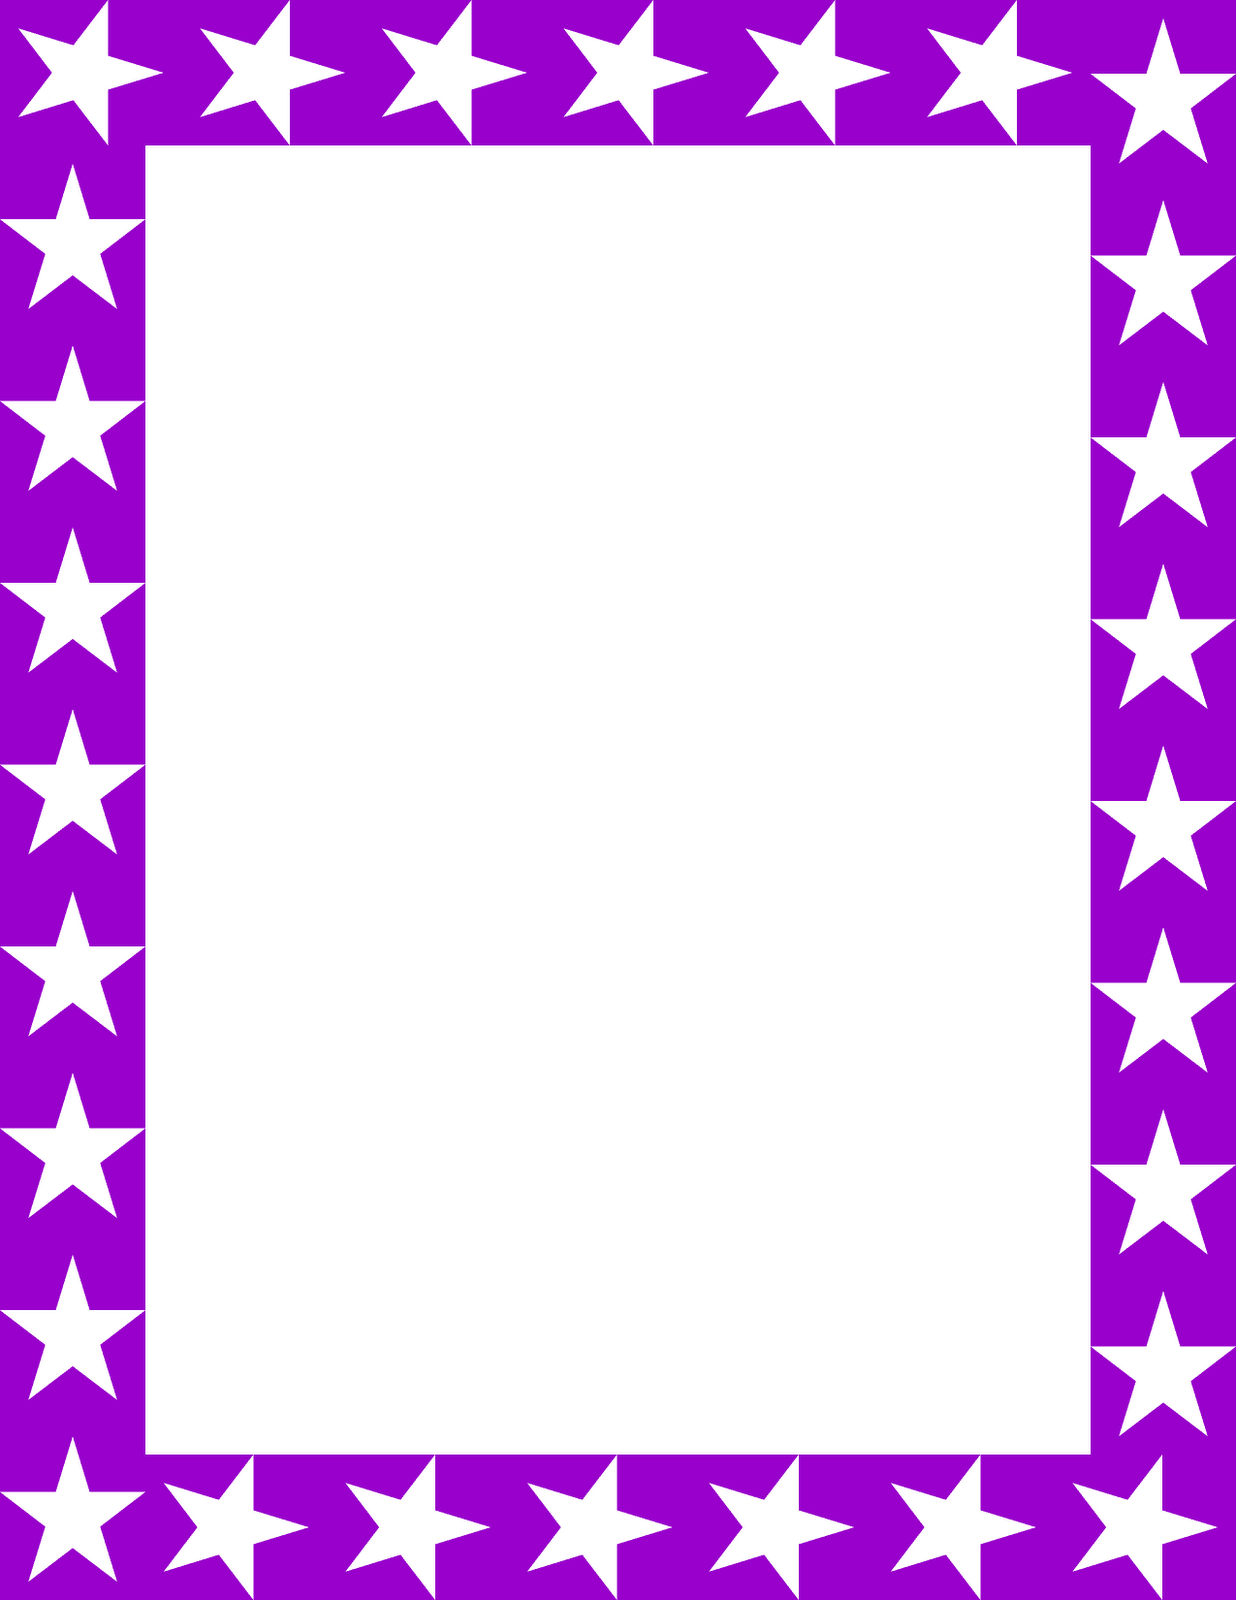 Purple picture frame clipart